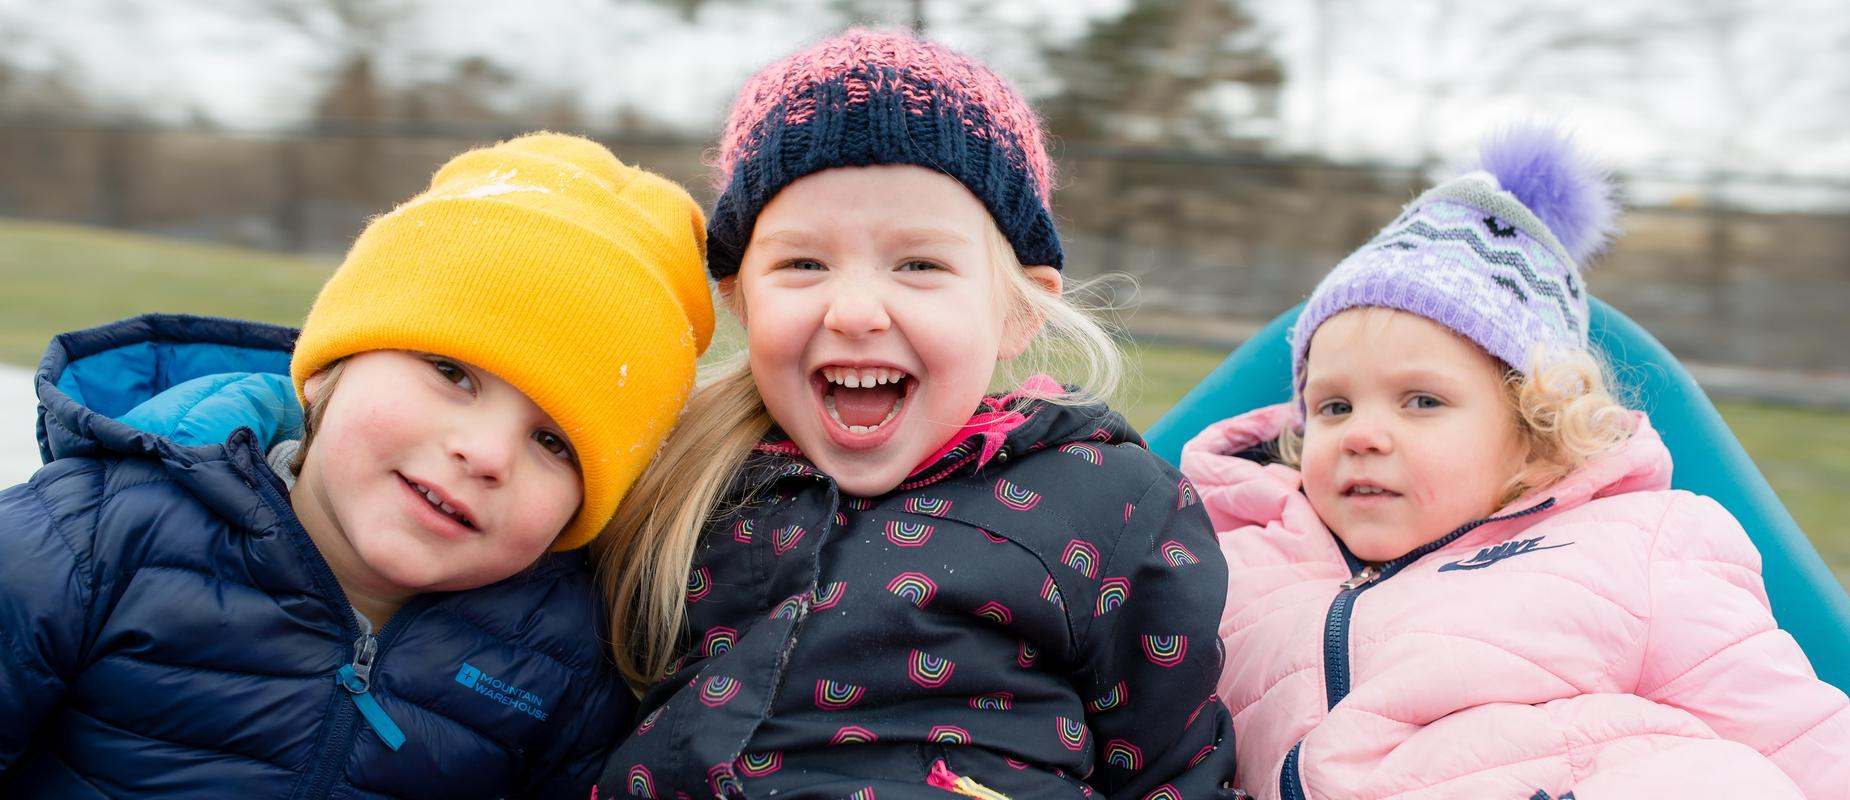 3 preschoolers on playground in their winter hats and jackets